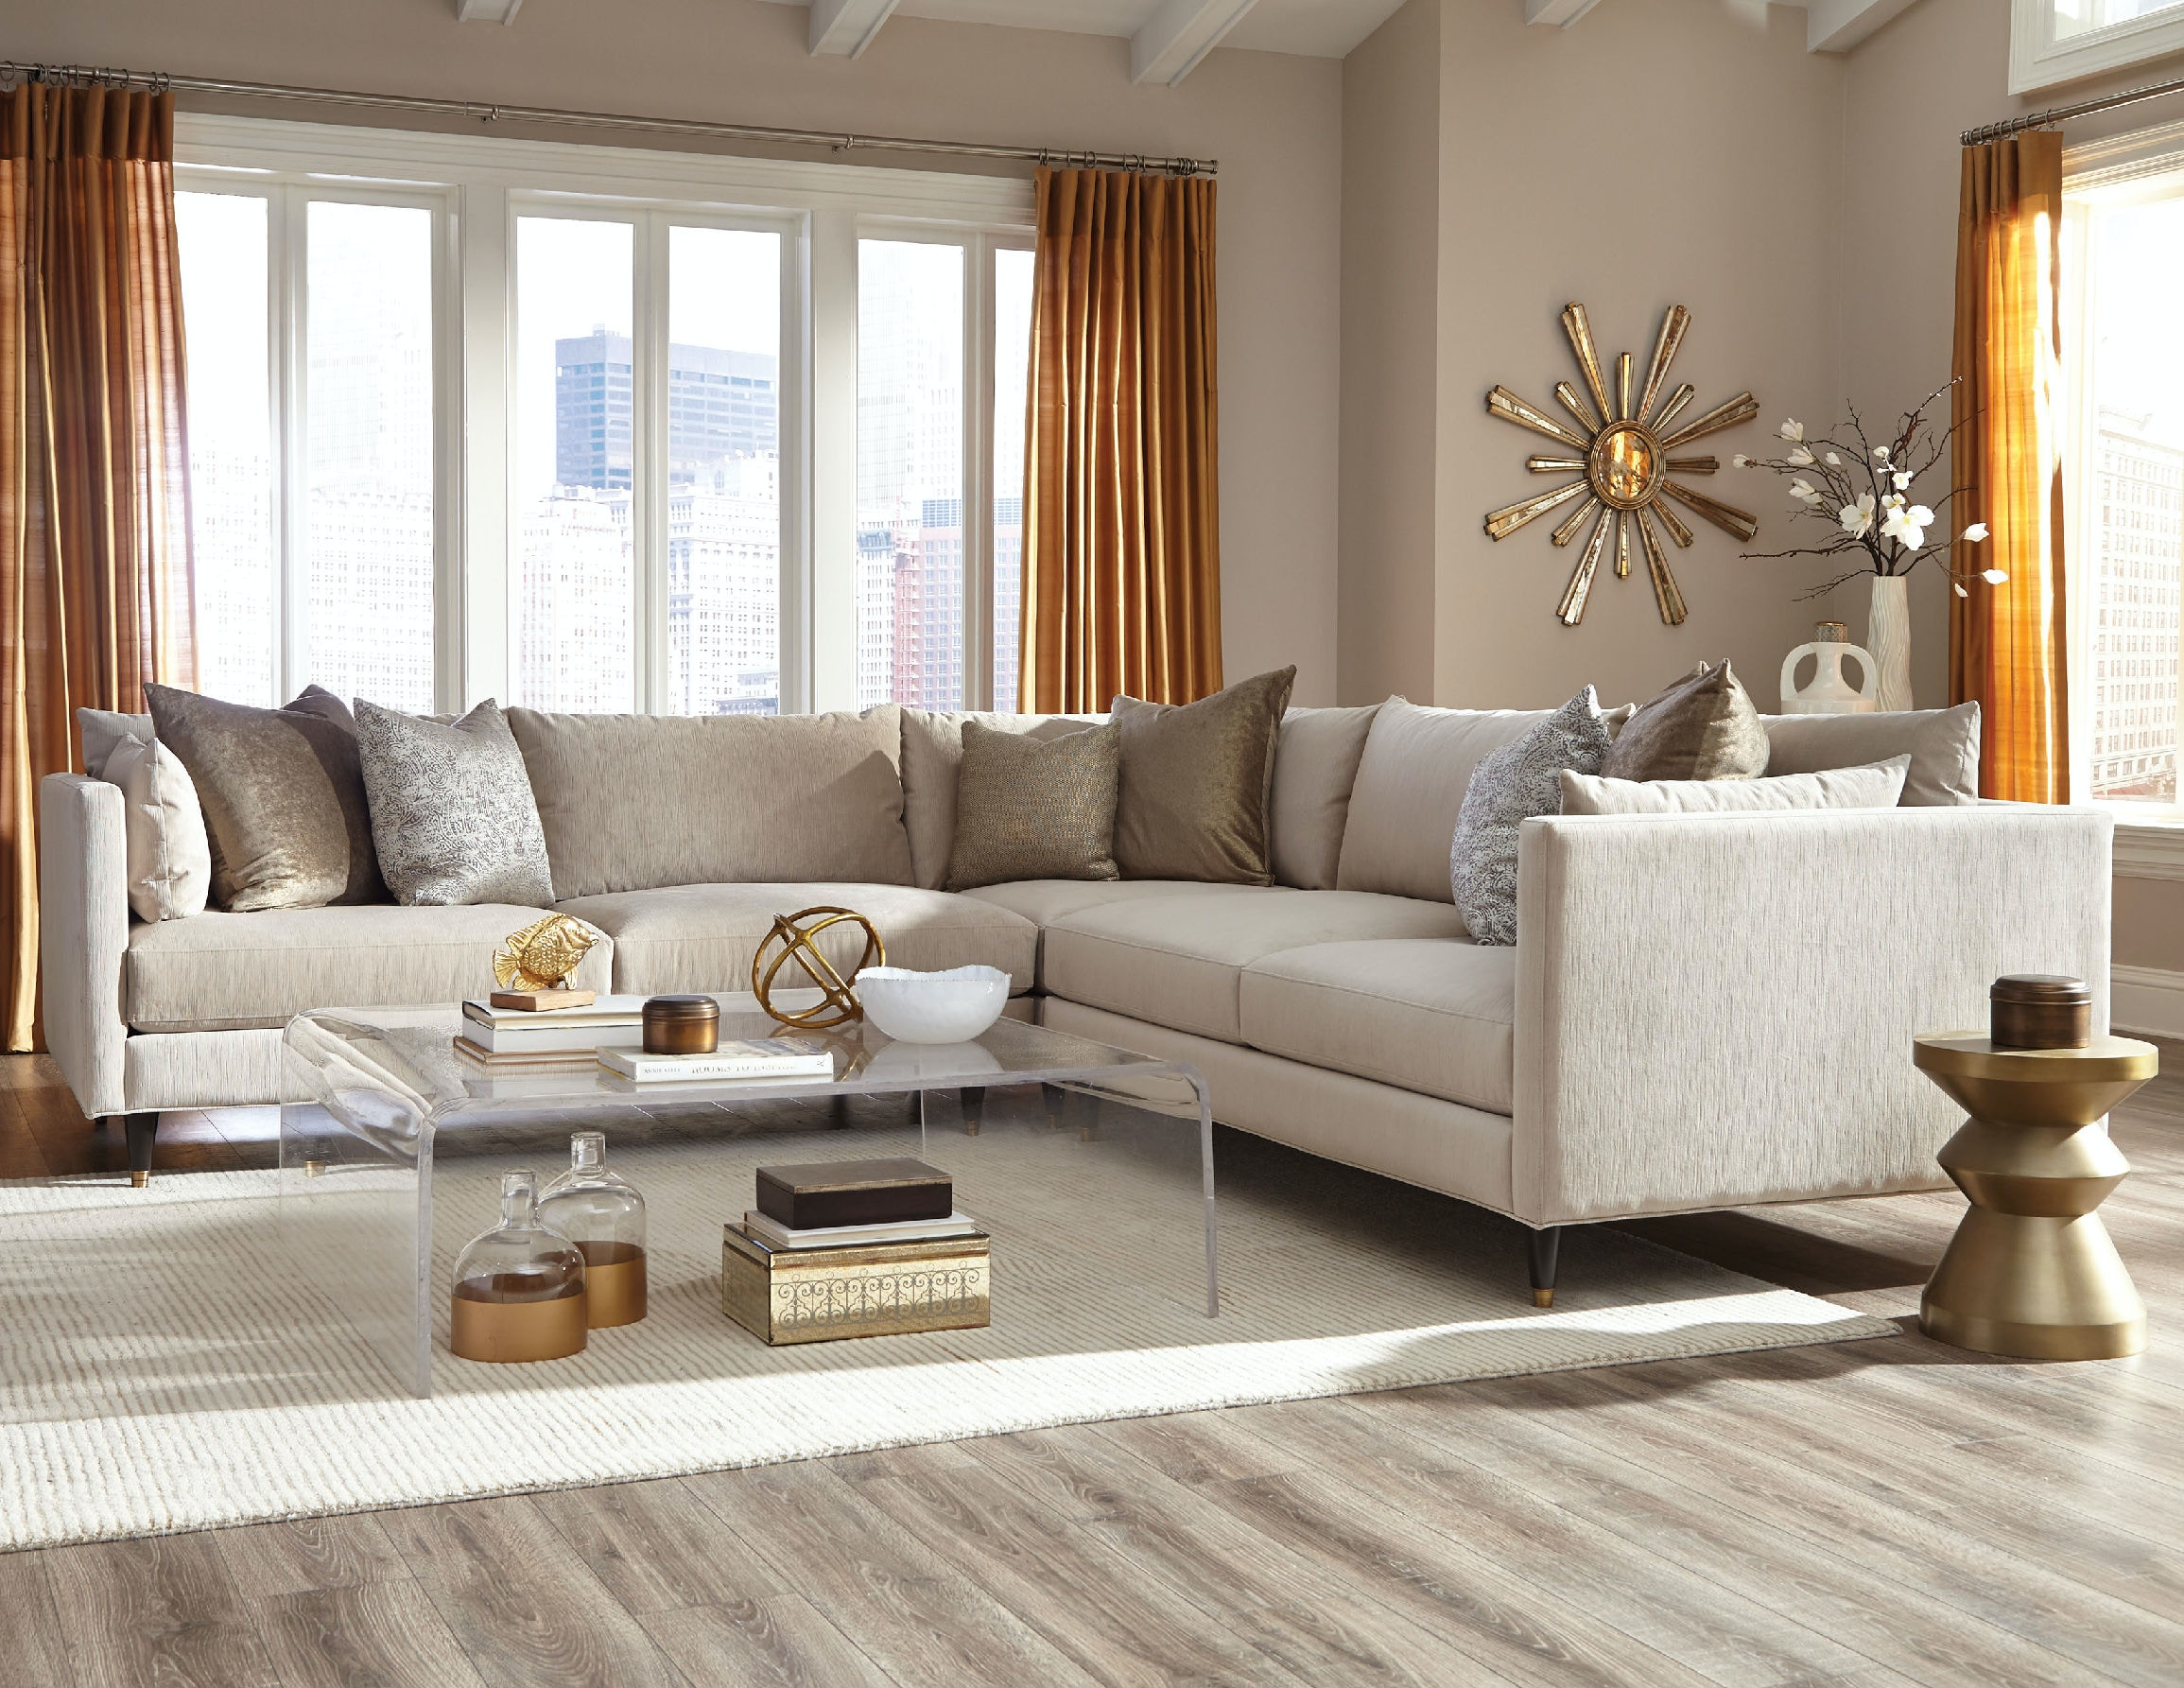 Exceptional 389 Sectional. Pia Sectional · Carol House Discount Price $2,297.00